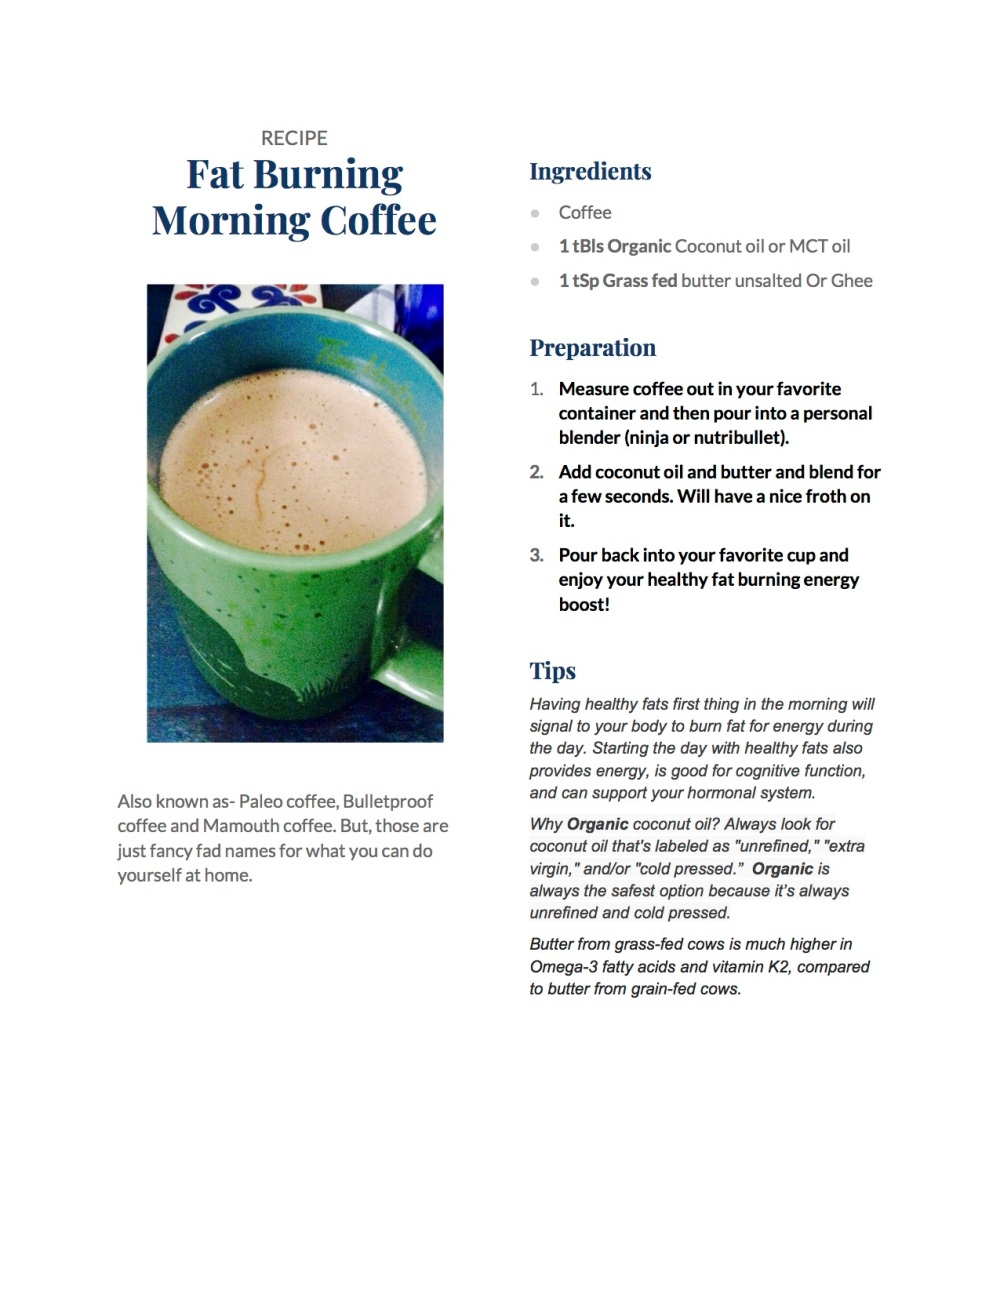 Fat Burning Morning Coffee